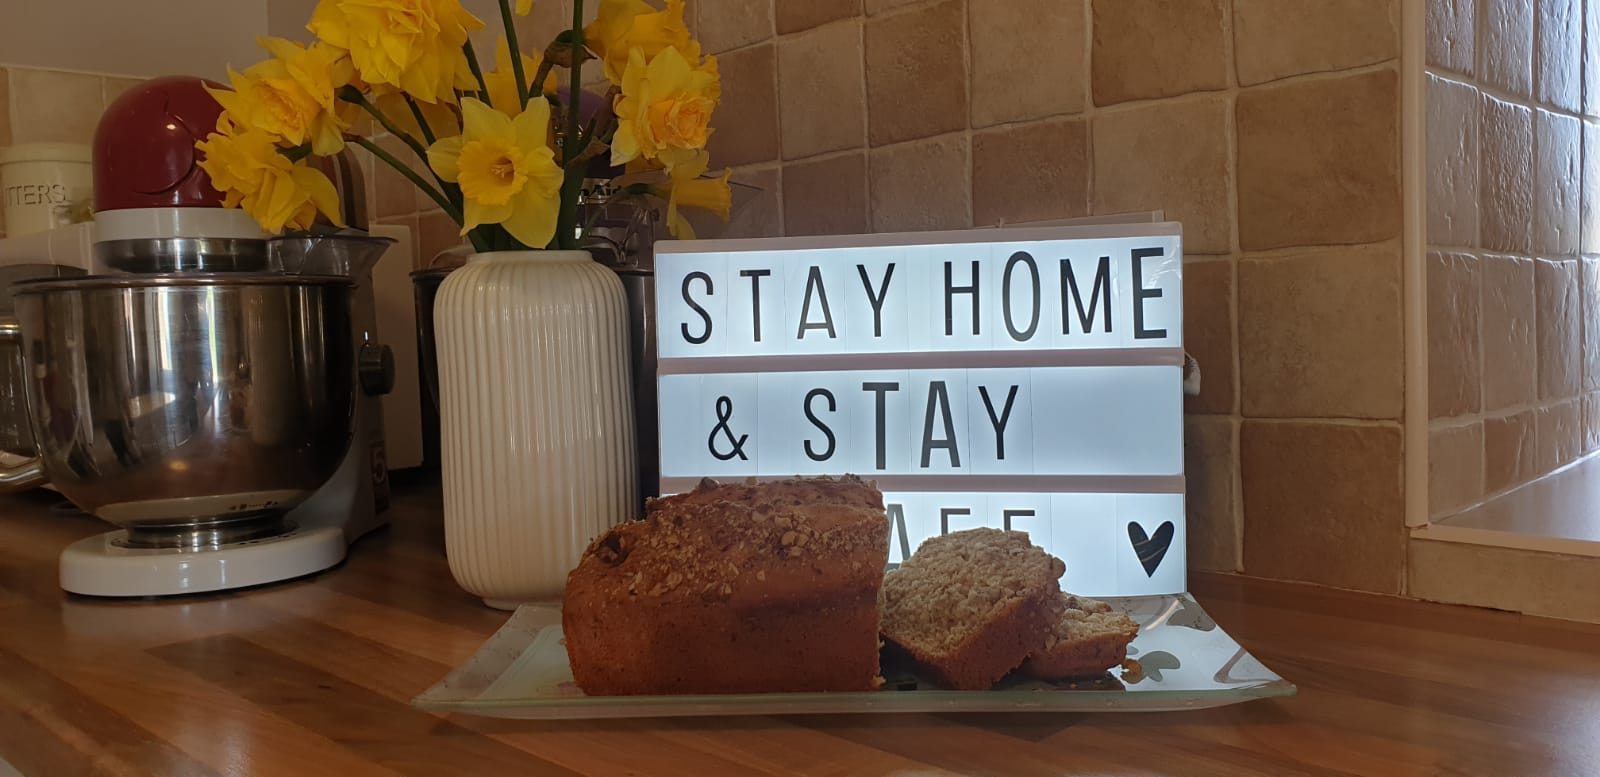 Siobhan's home-made brown bread